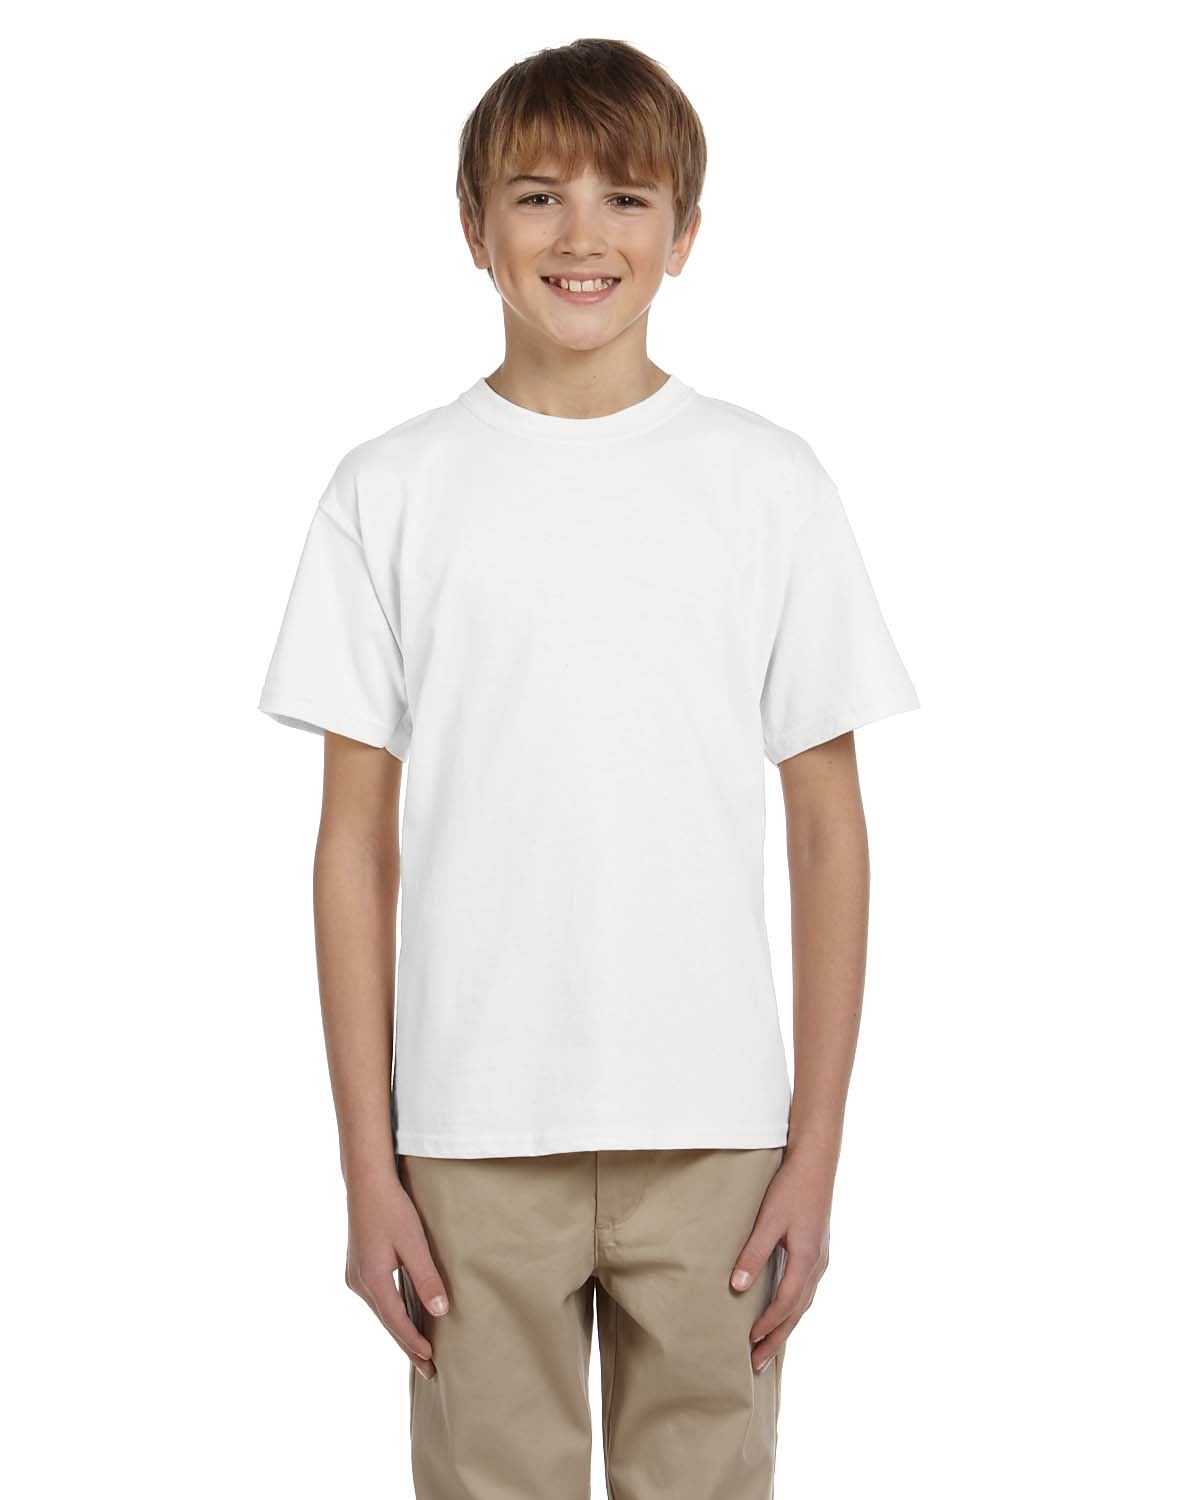 Fruit of the loom 3931b kids 100 cotton t shirt shirtmax for High end white t shirts